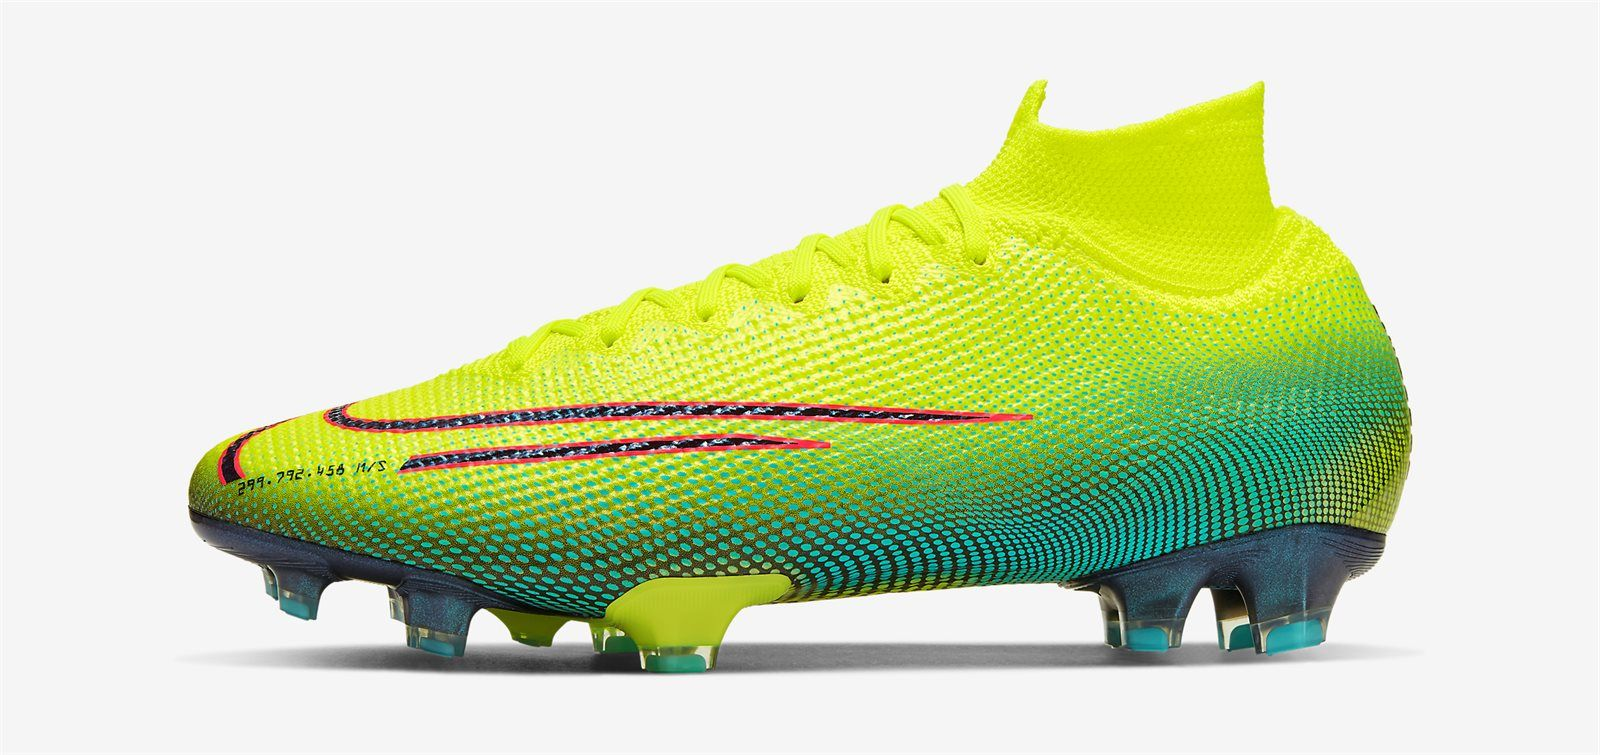 Ronaldo New Football Boots 2020 In 2020 Nike Football Boots Football Boots Soccer Cleats